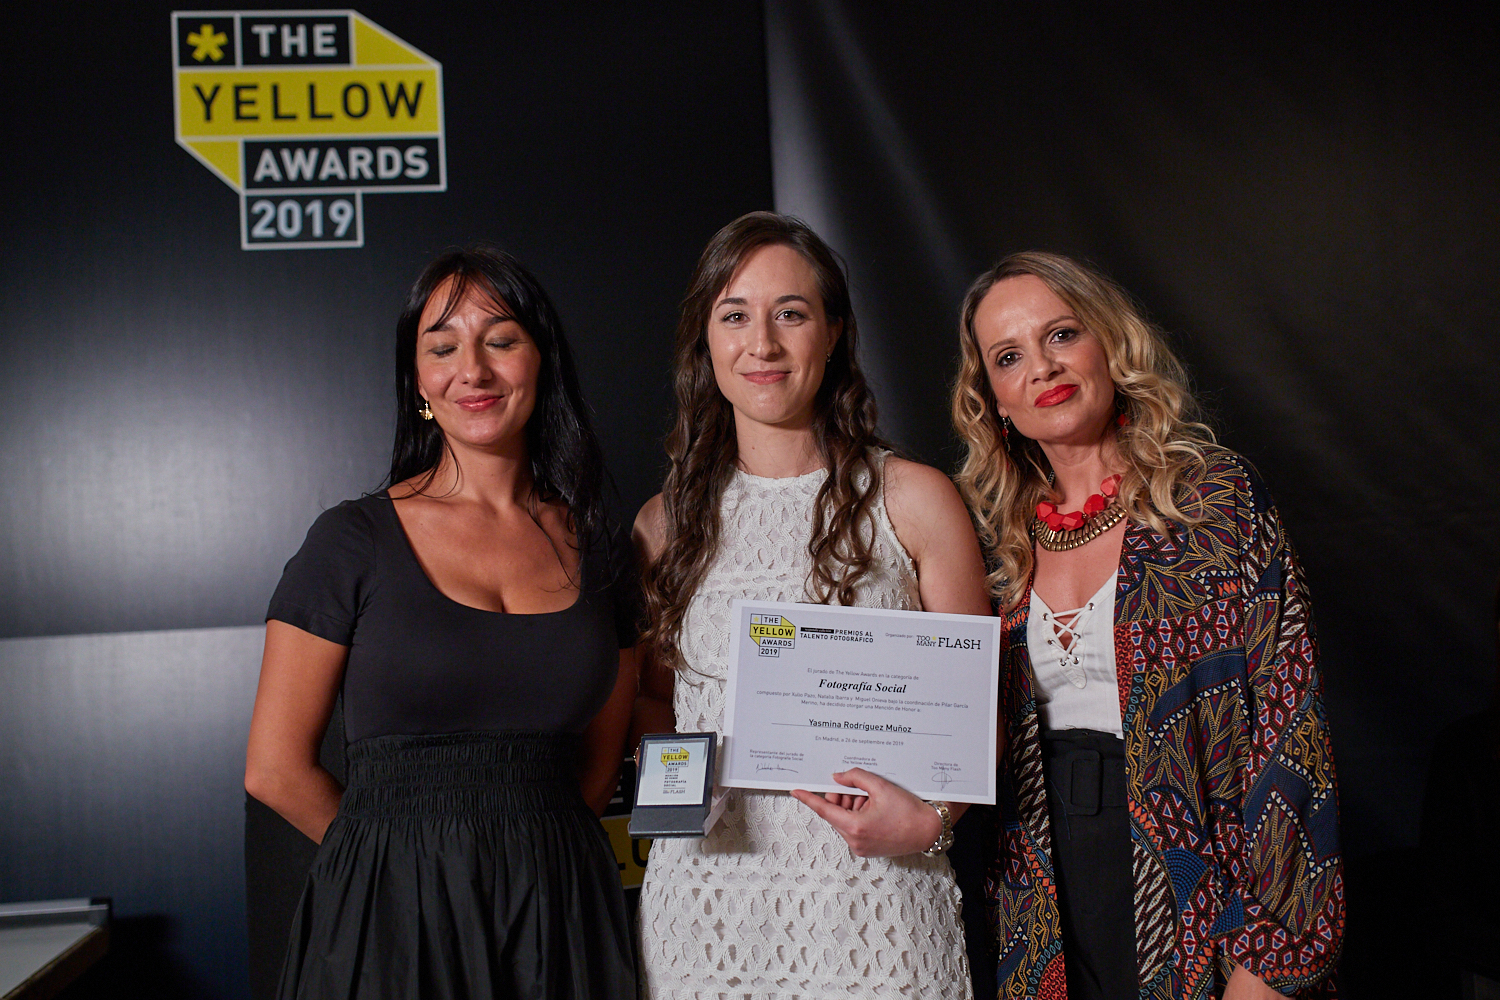 The Yellow Awards 2019